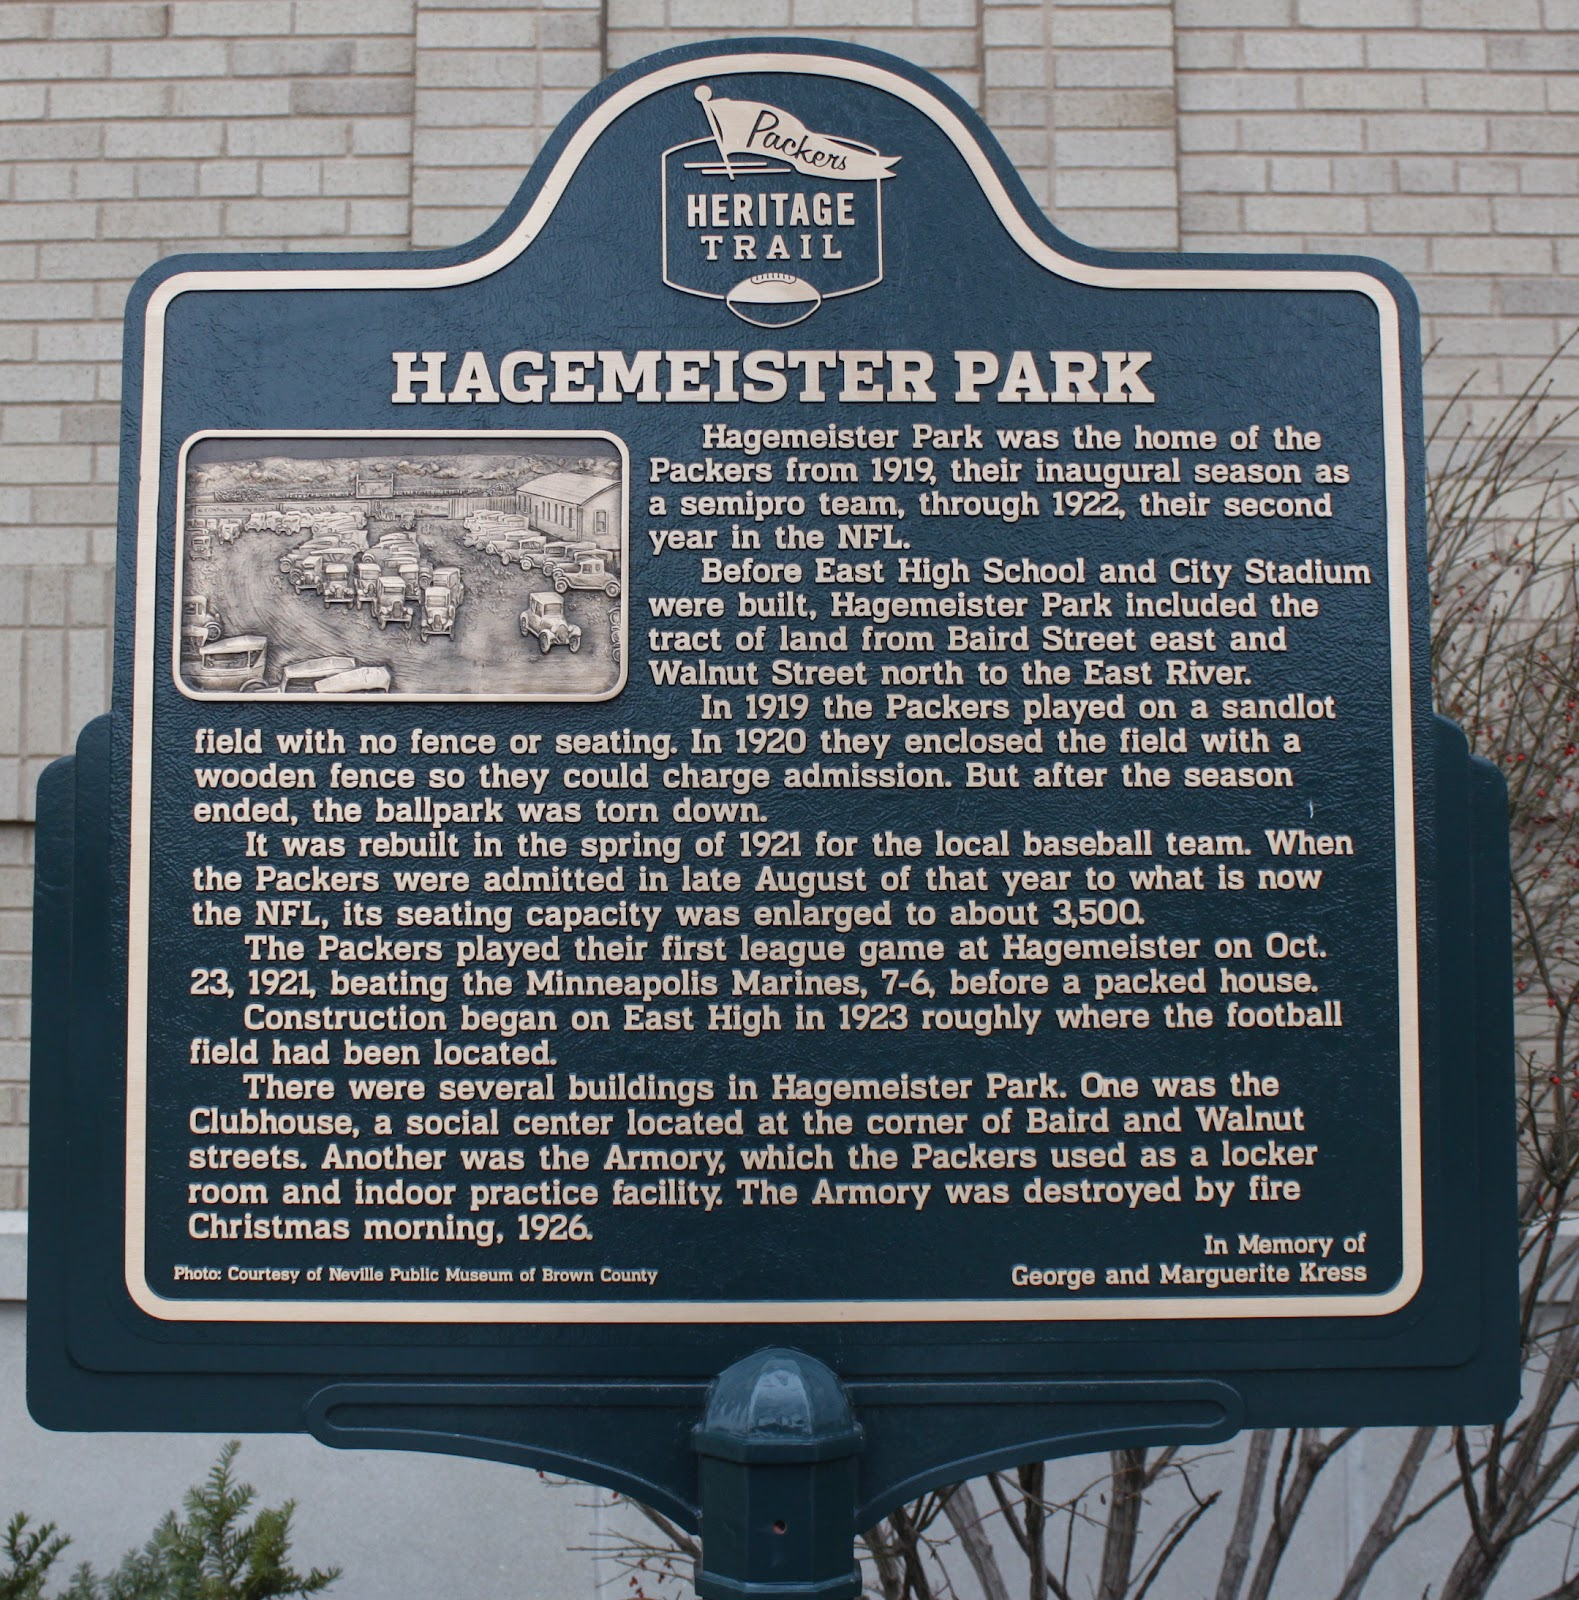 Wisconsin historical markers packer heritage trail marker for Hagemeister park